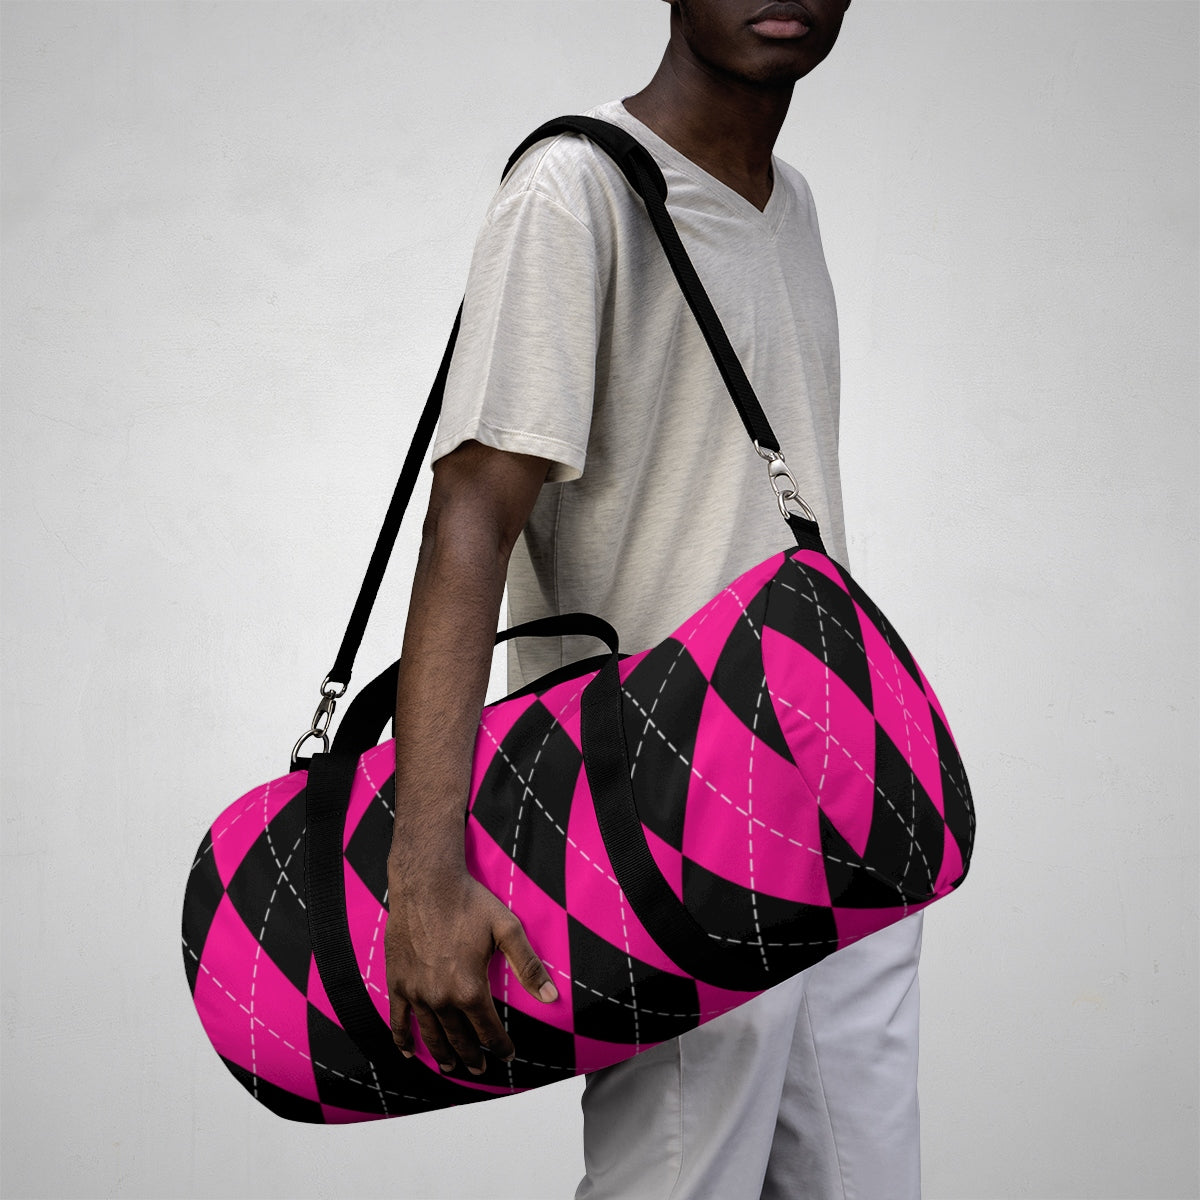 Black and Pink Argyle Pattern Gym Bag